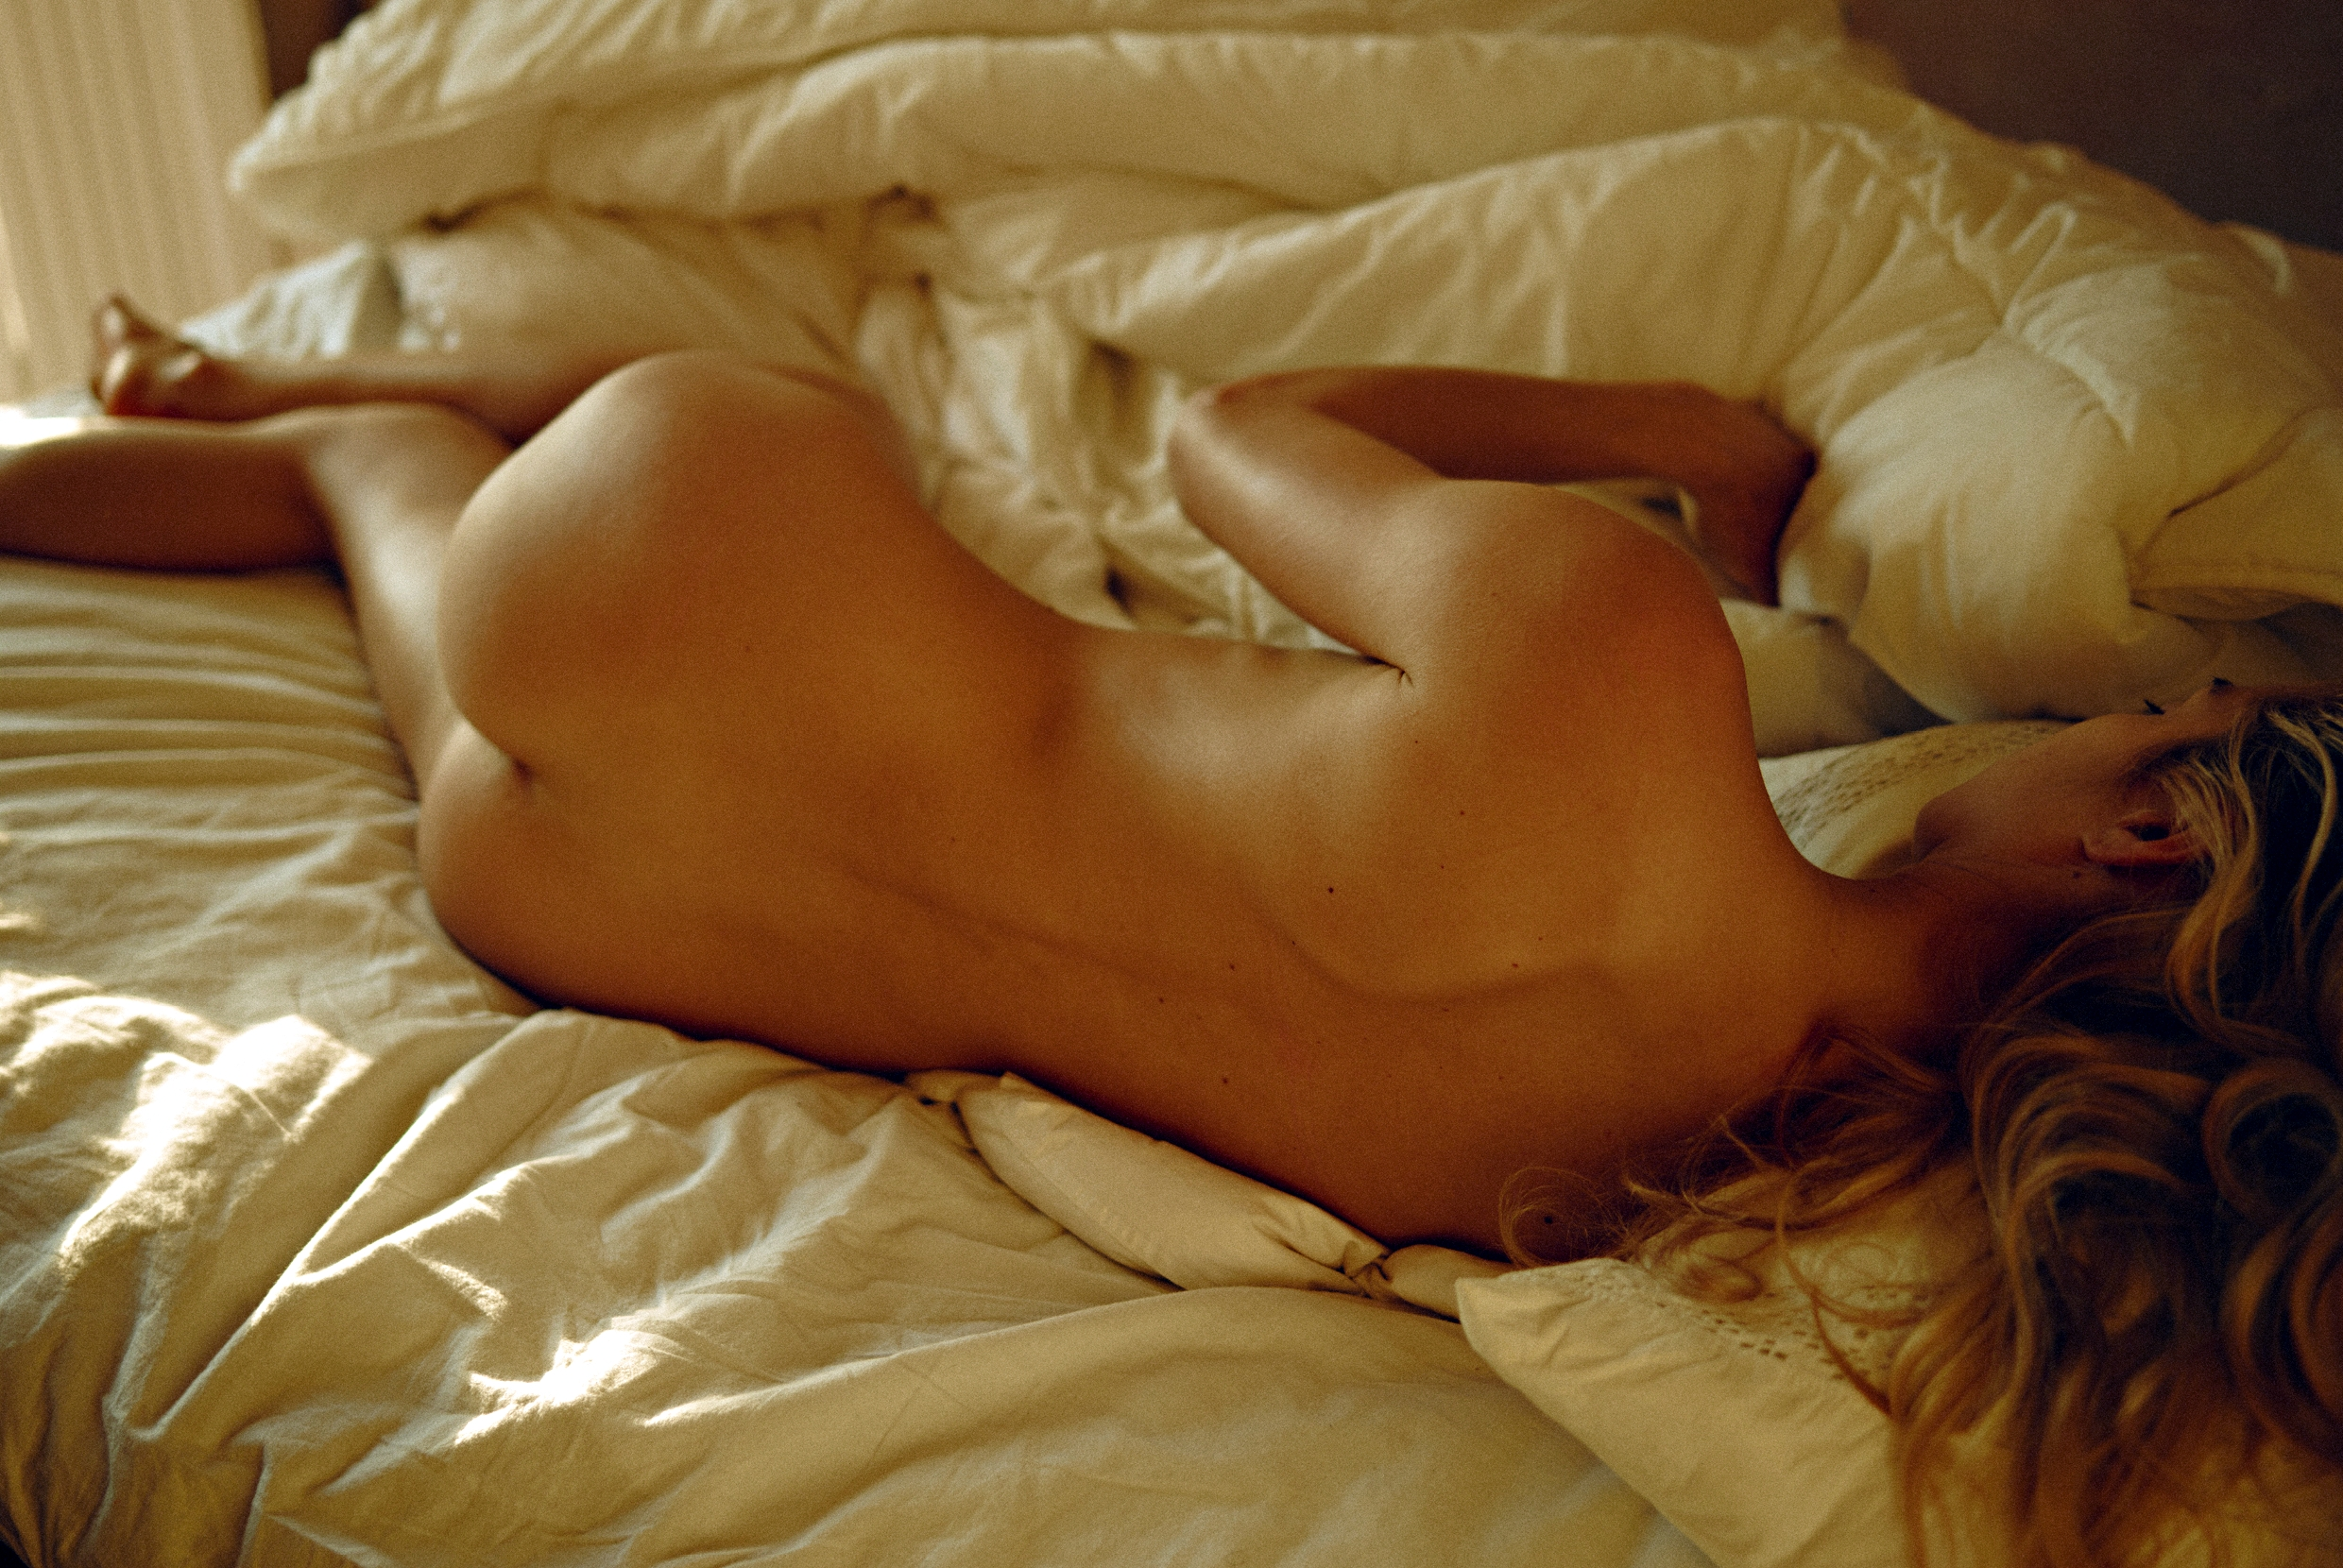 Johanna Thuresson Nude Ph...